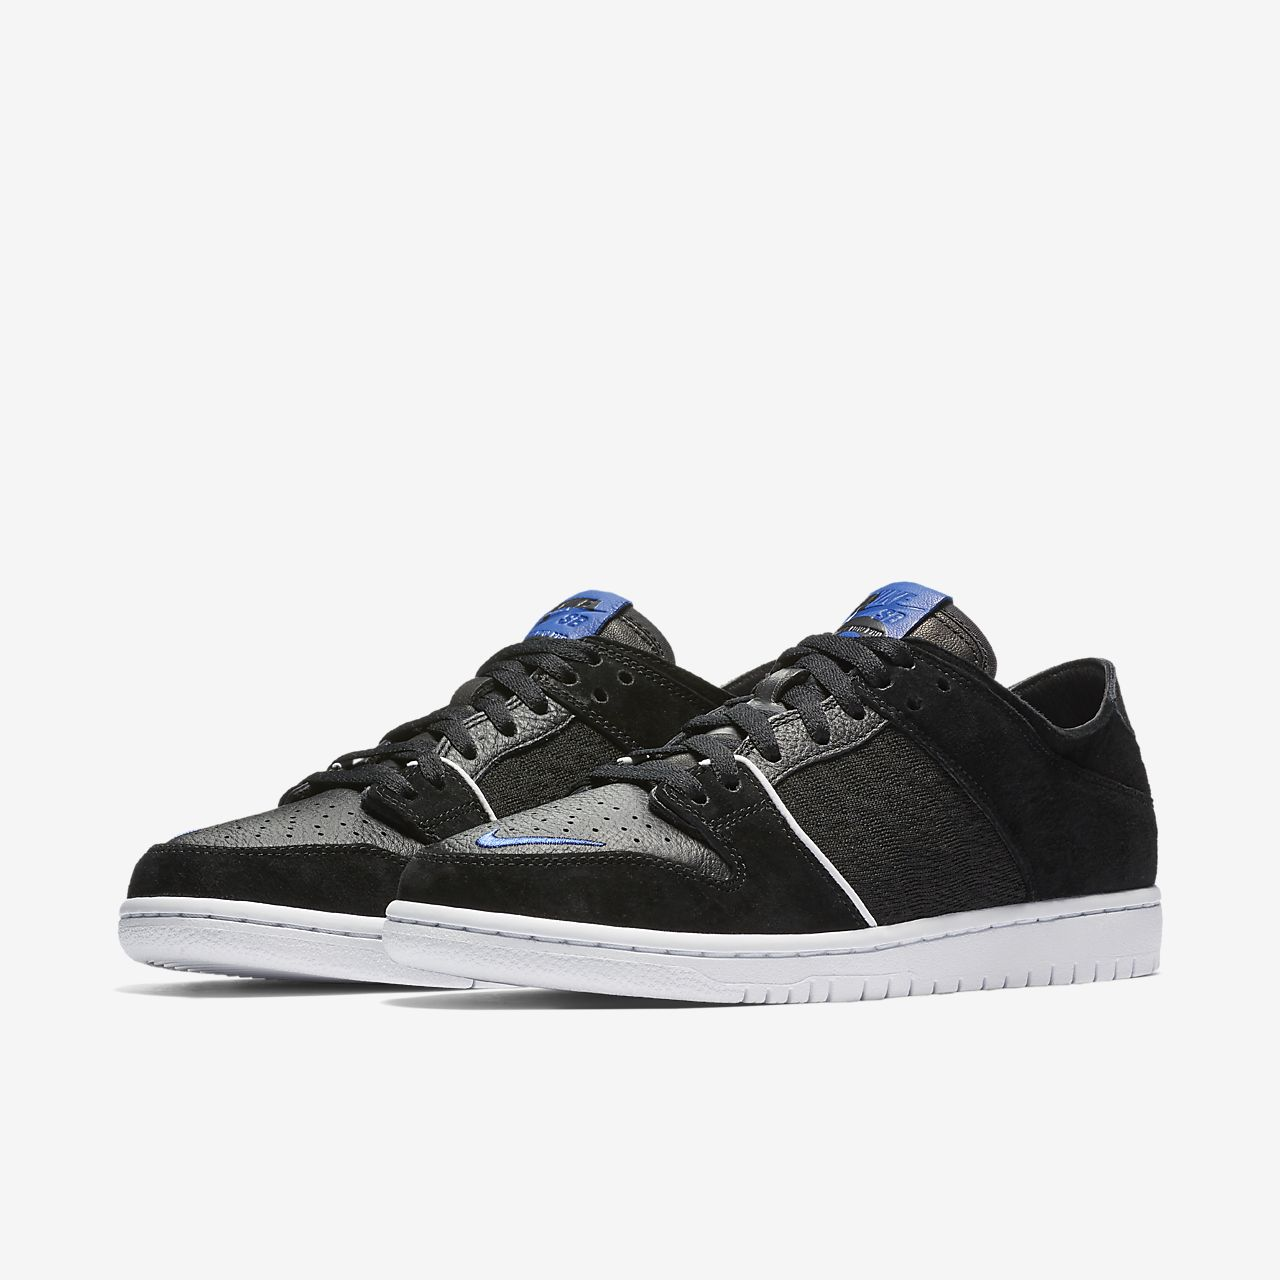 Nike SB Zoom Dunk Low Pro QS Men's Skateboarding Shoes Black/White iN4051X